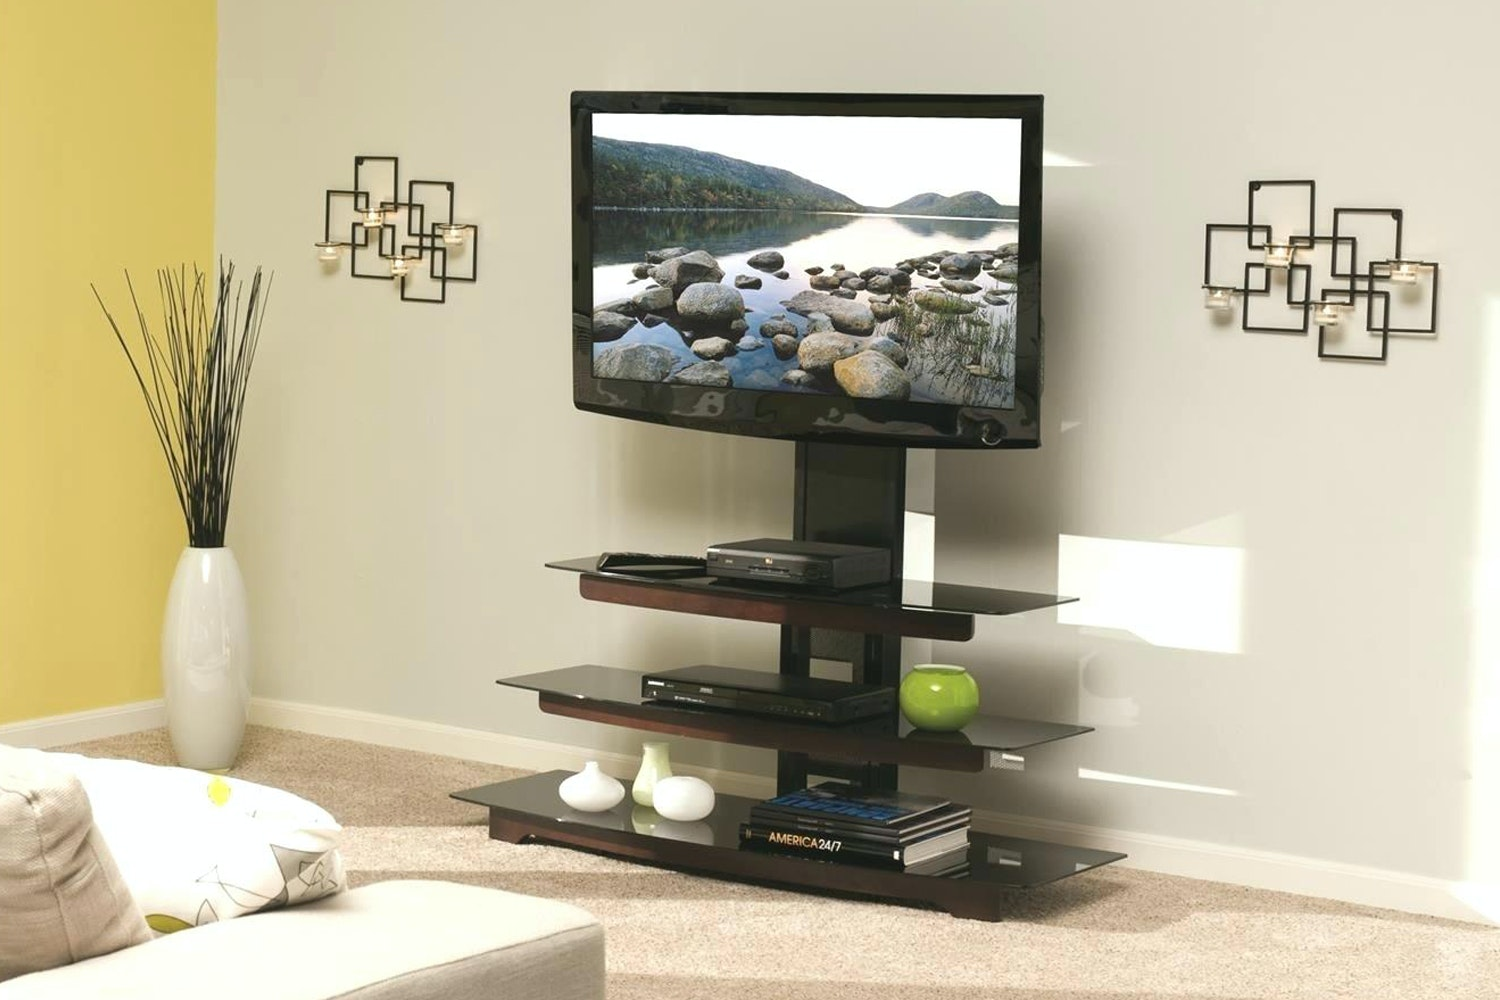 Sanus Audio Video Stand | BFAV550-CH1